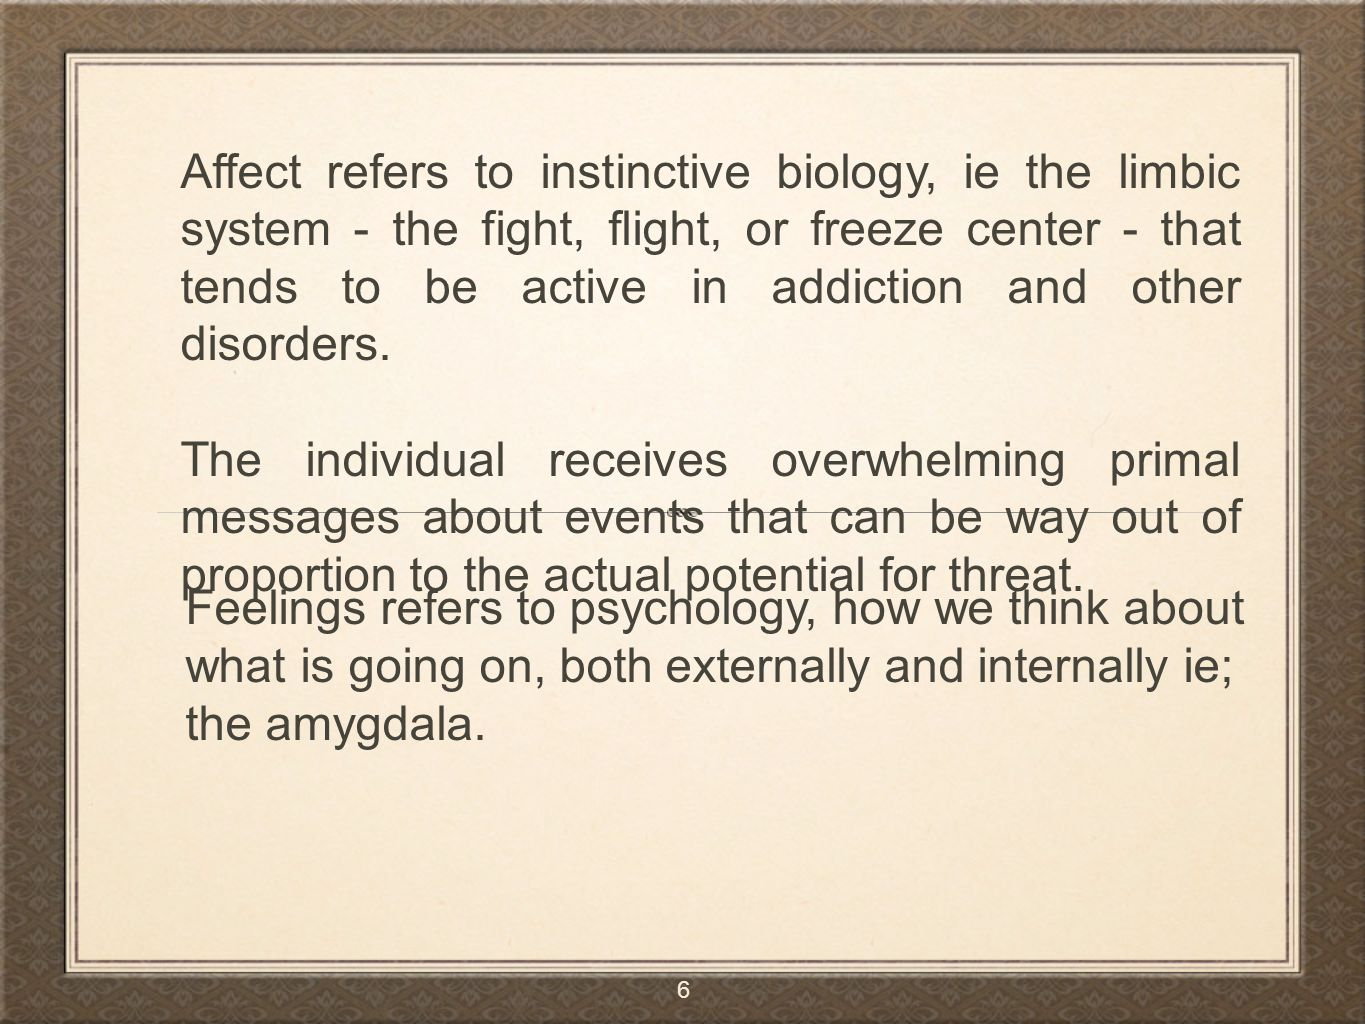 Feelings refers to psychology, how we think about